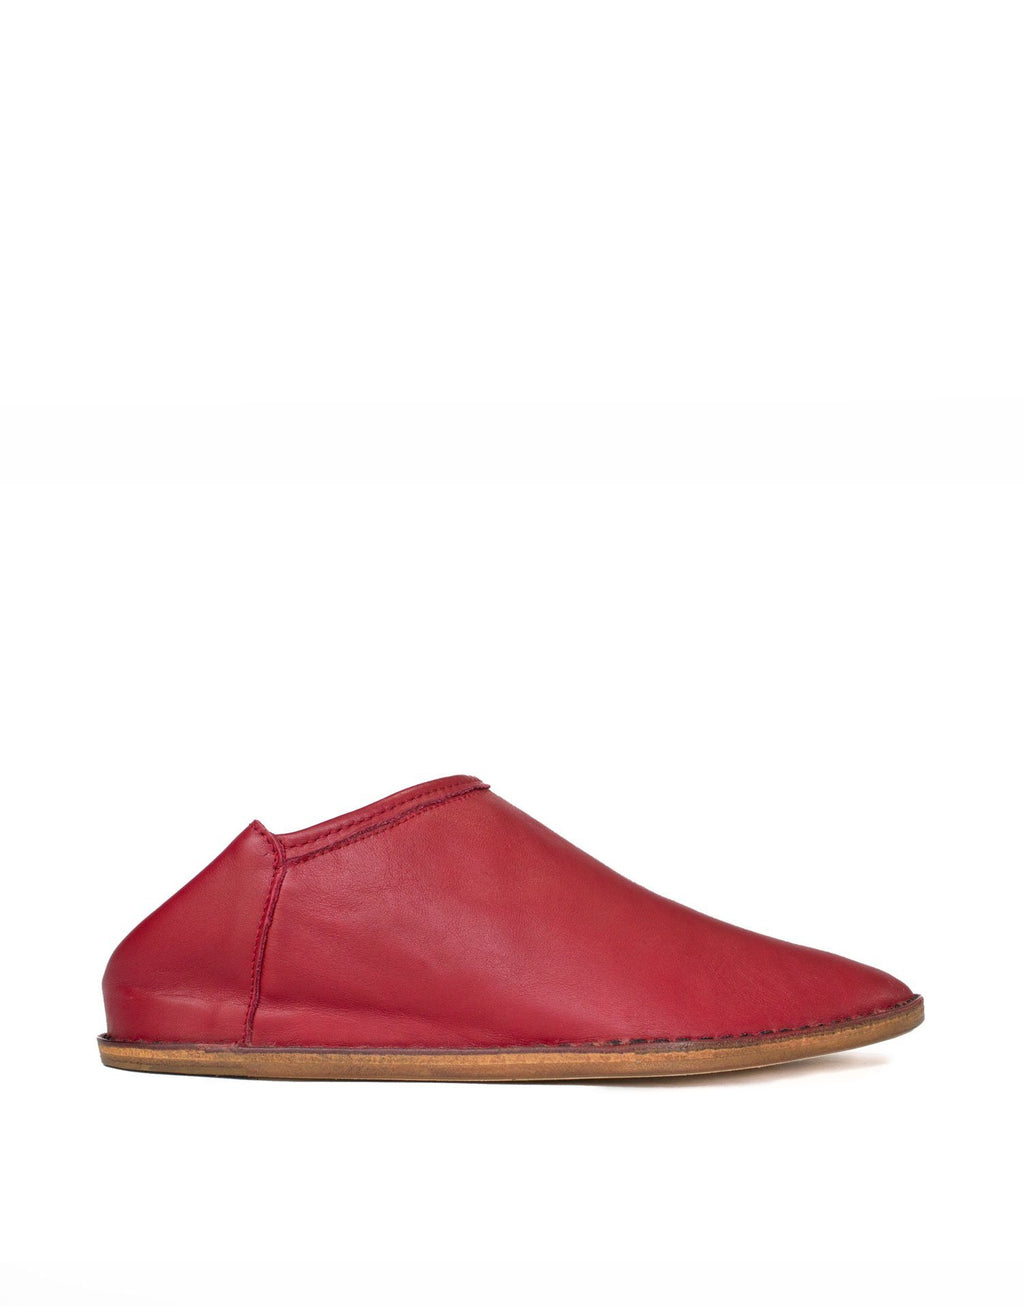 Red leather slipper with hidden wedge and padded insole for maximum comfort, love flats, love comfy feet.